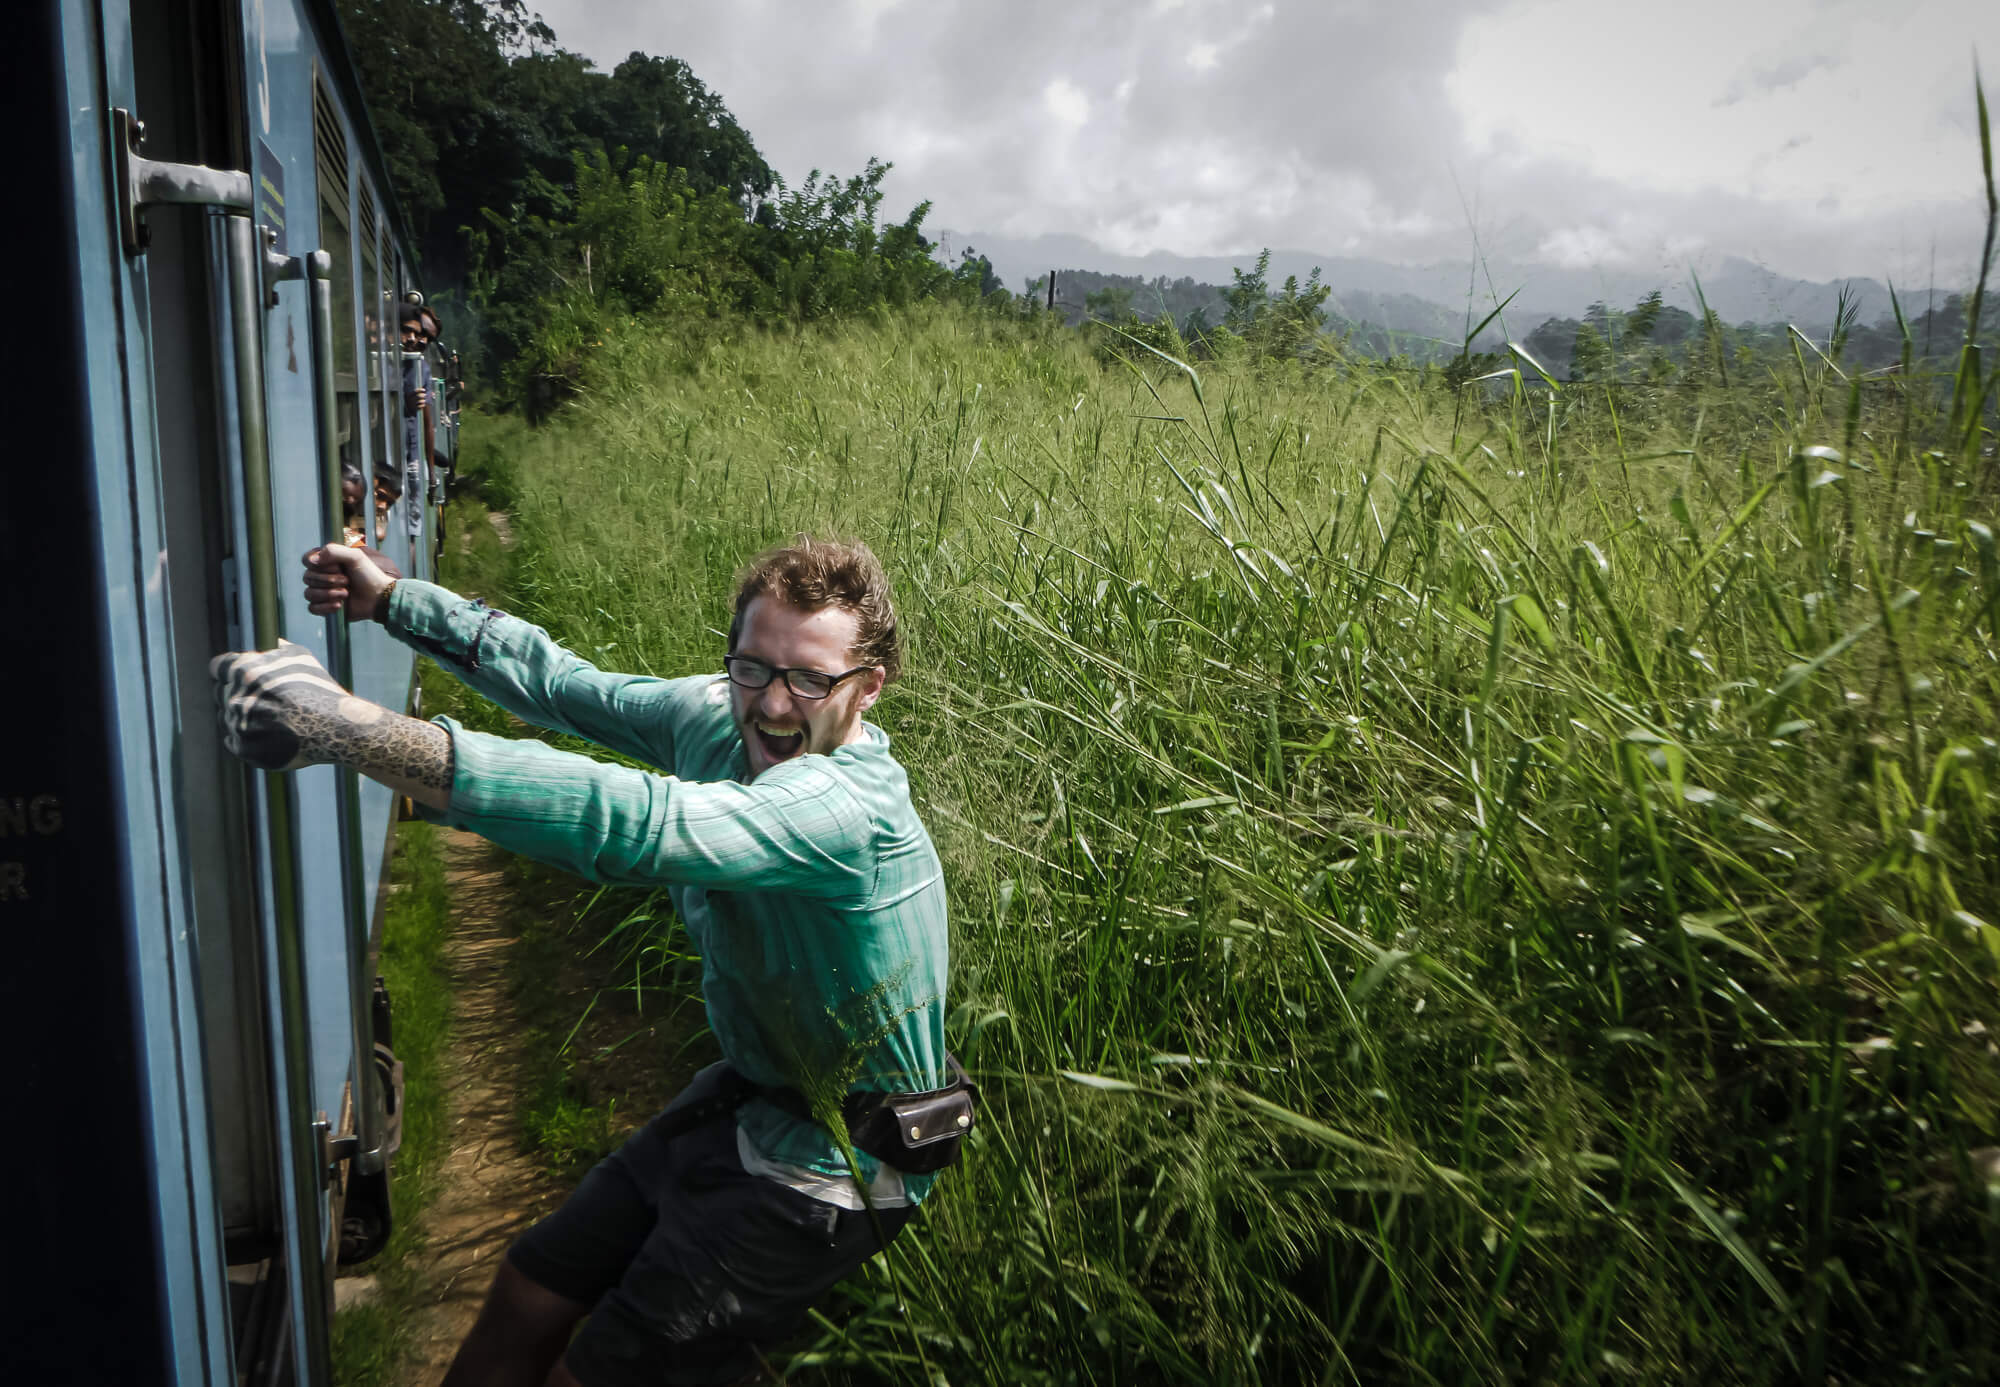 A backpacker riding the Kandy to Ella train in Si Lank